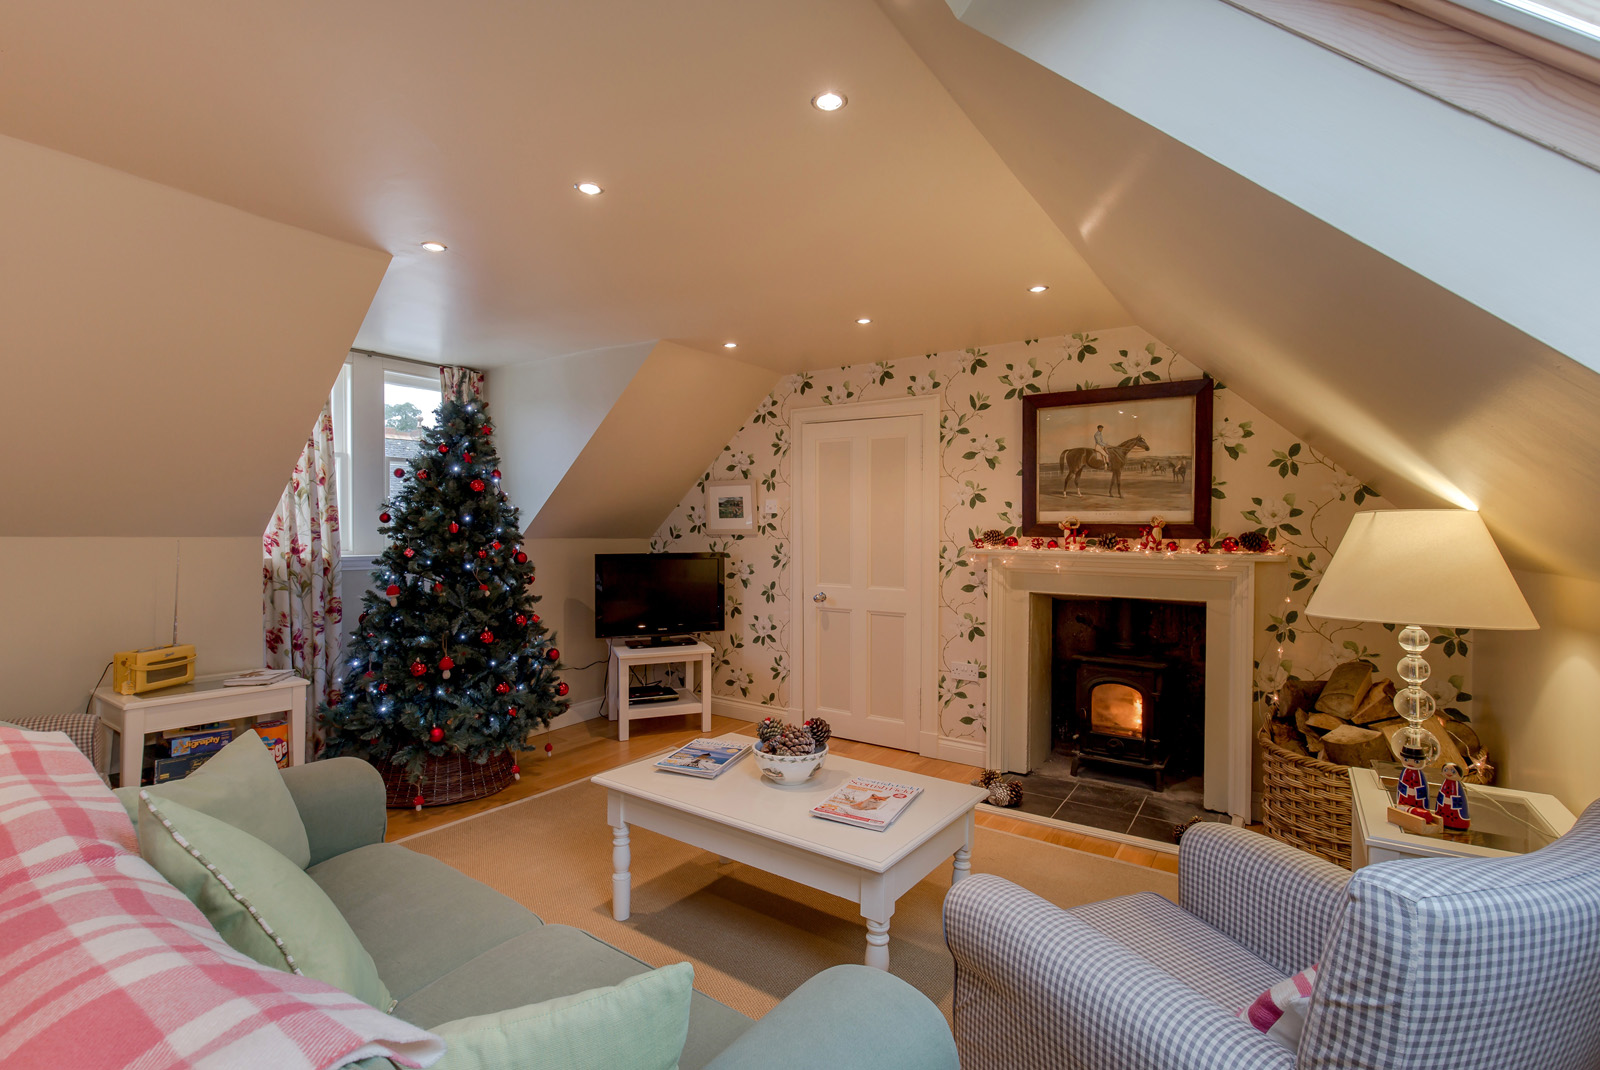 Stables Cottage has a cosy log burner